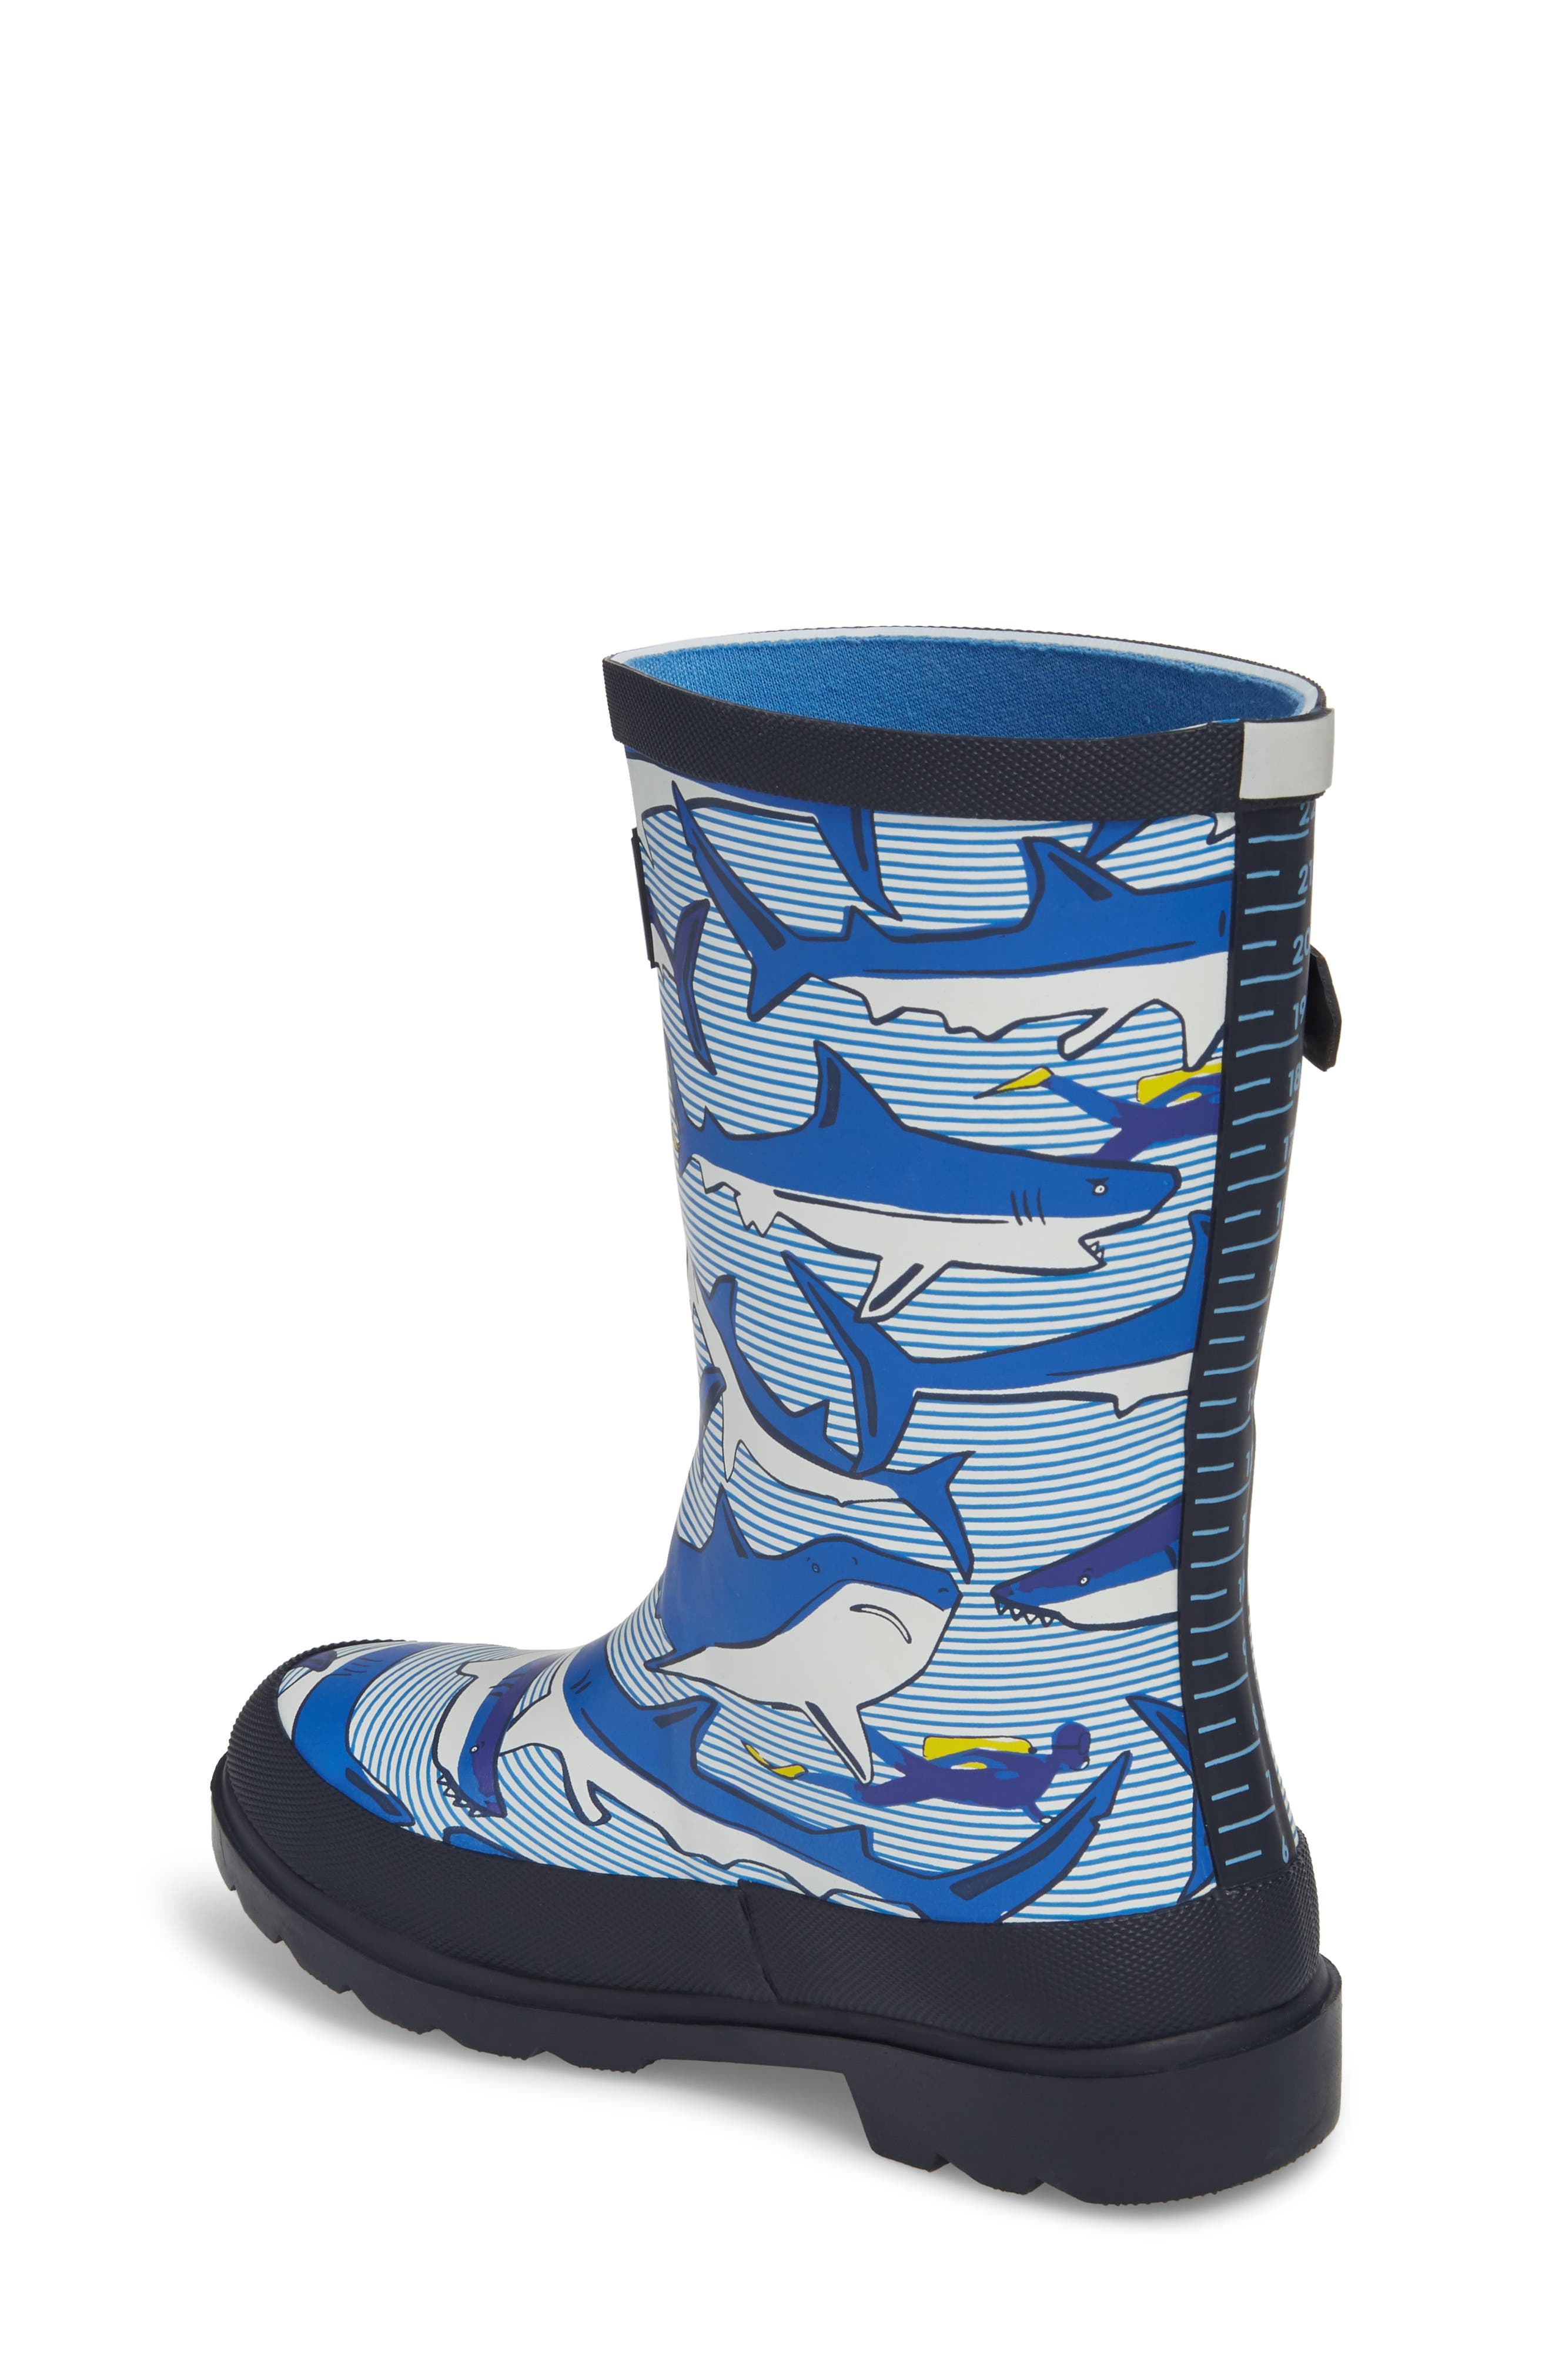 Alternate Image 2  - Joules Mid Height Print Welly Rain Boot (Toddler, Little Kid & Big Kid)